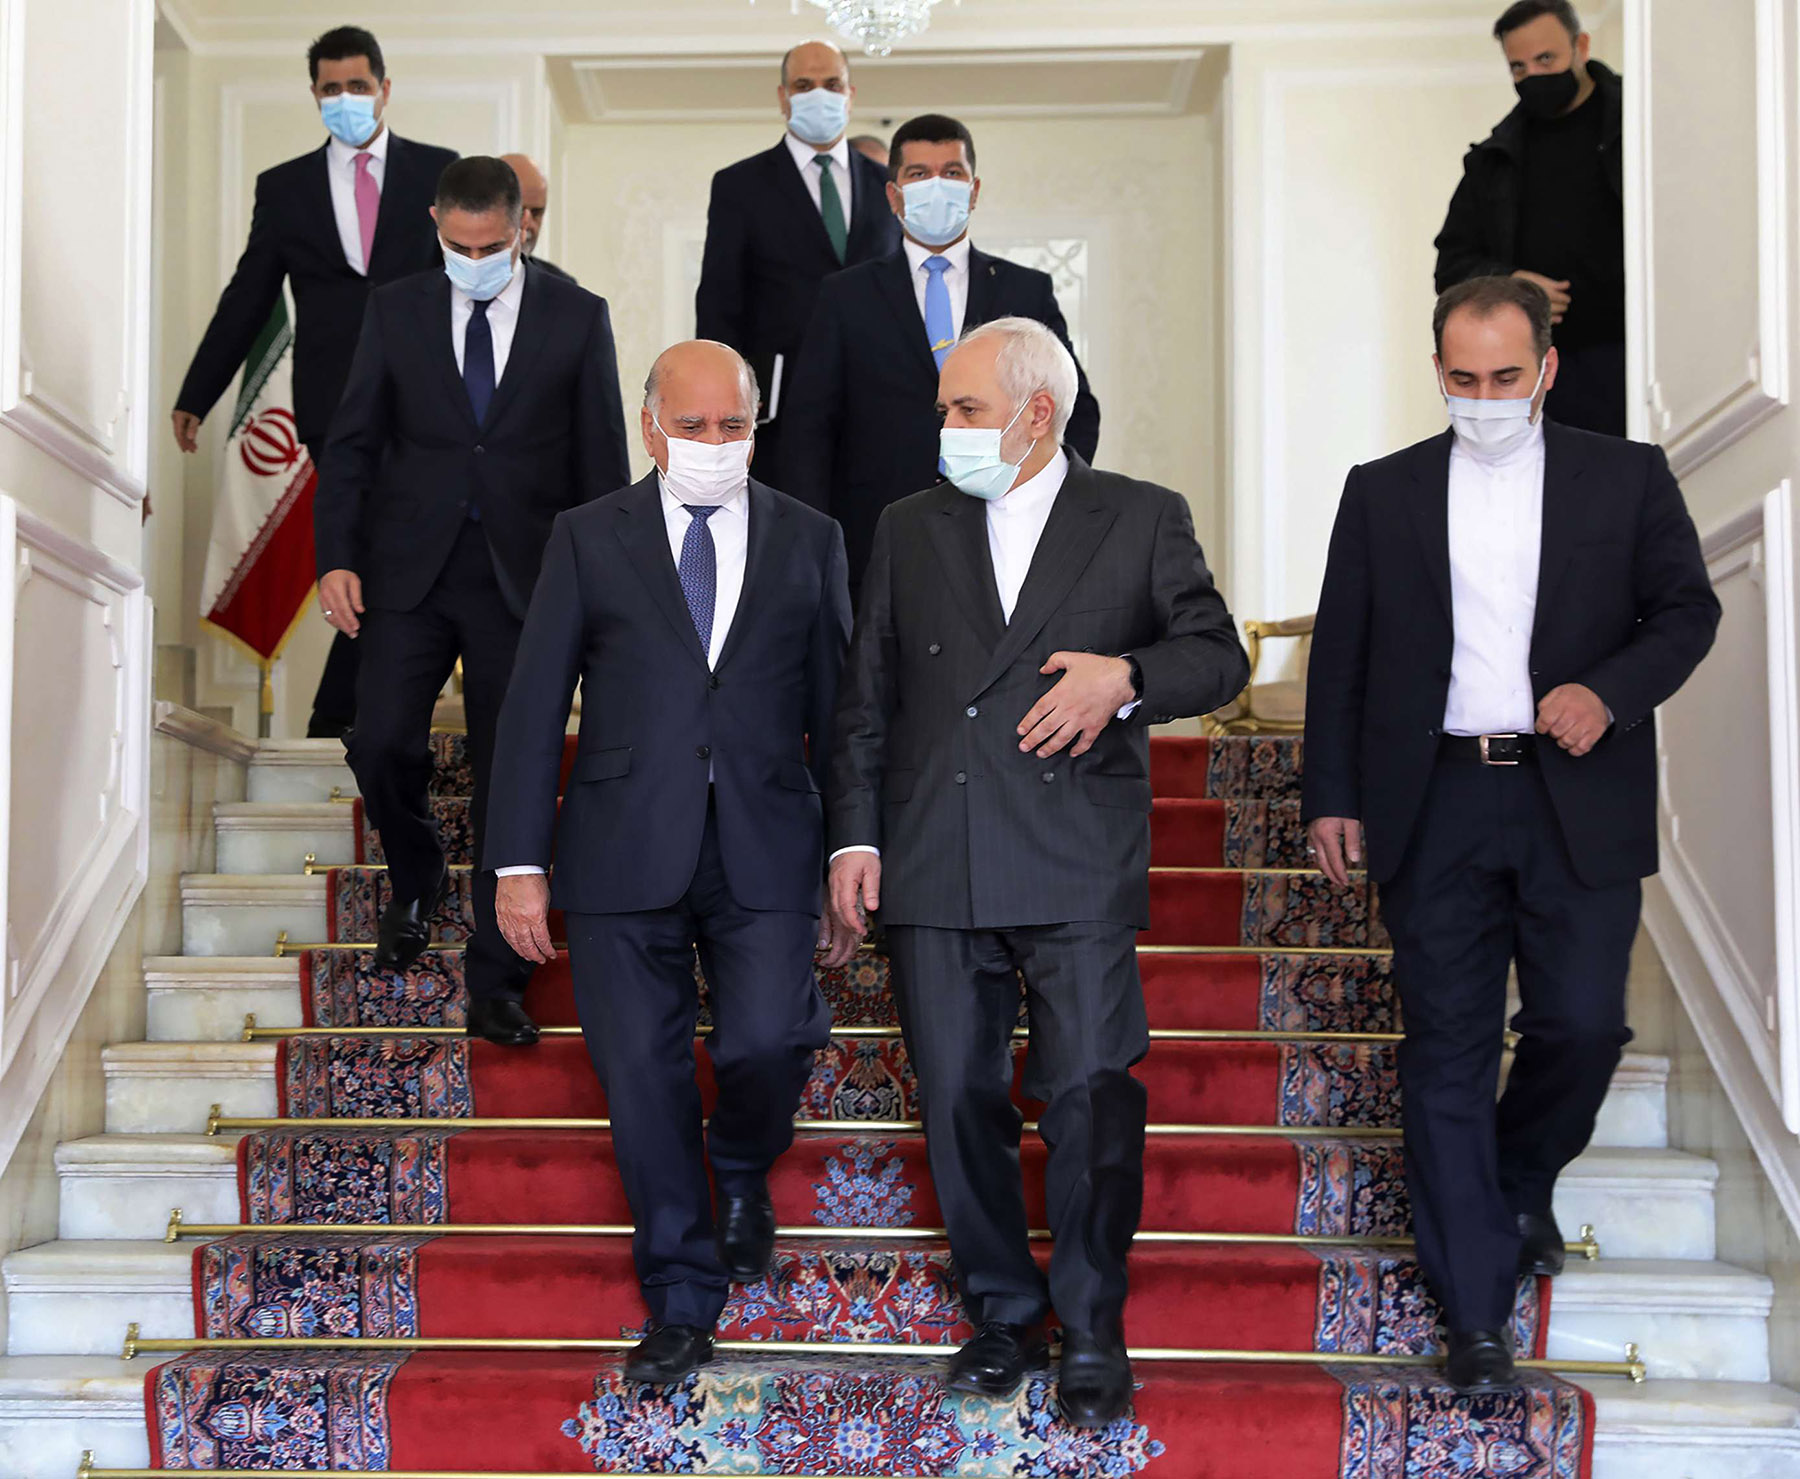 Iranian Foreign Minister Mohammad Javad Zarif, center right, and his Iraqi counterpart Fuad Hussein, center left, arrive for a meeting in Tehran, Iran, Feb. 3, 2021. (AP)